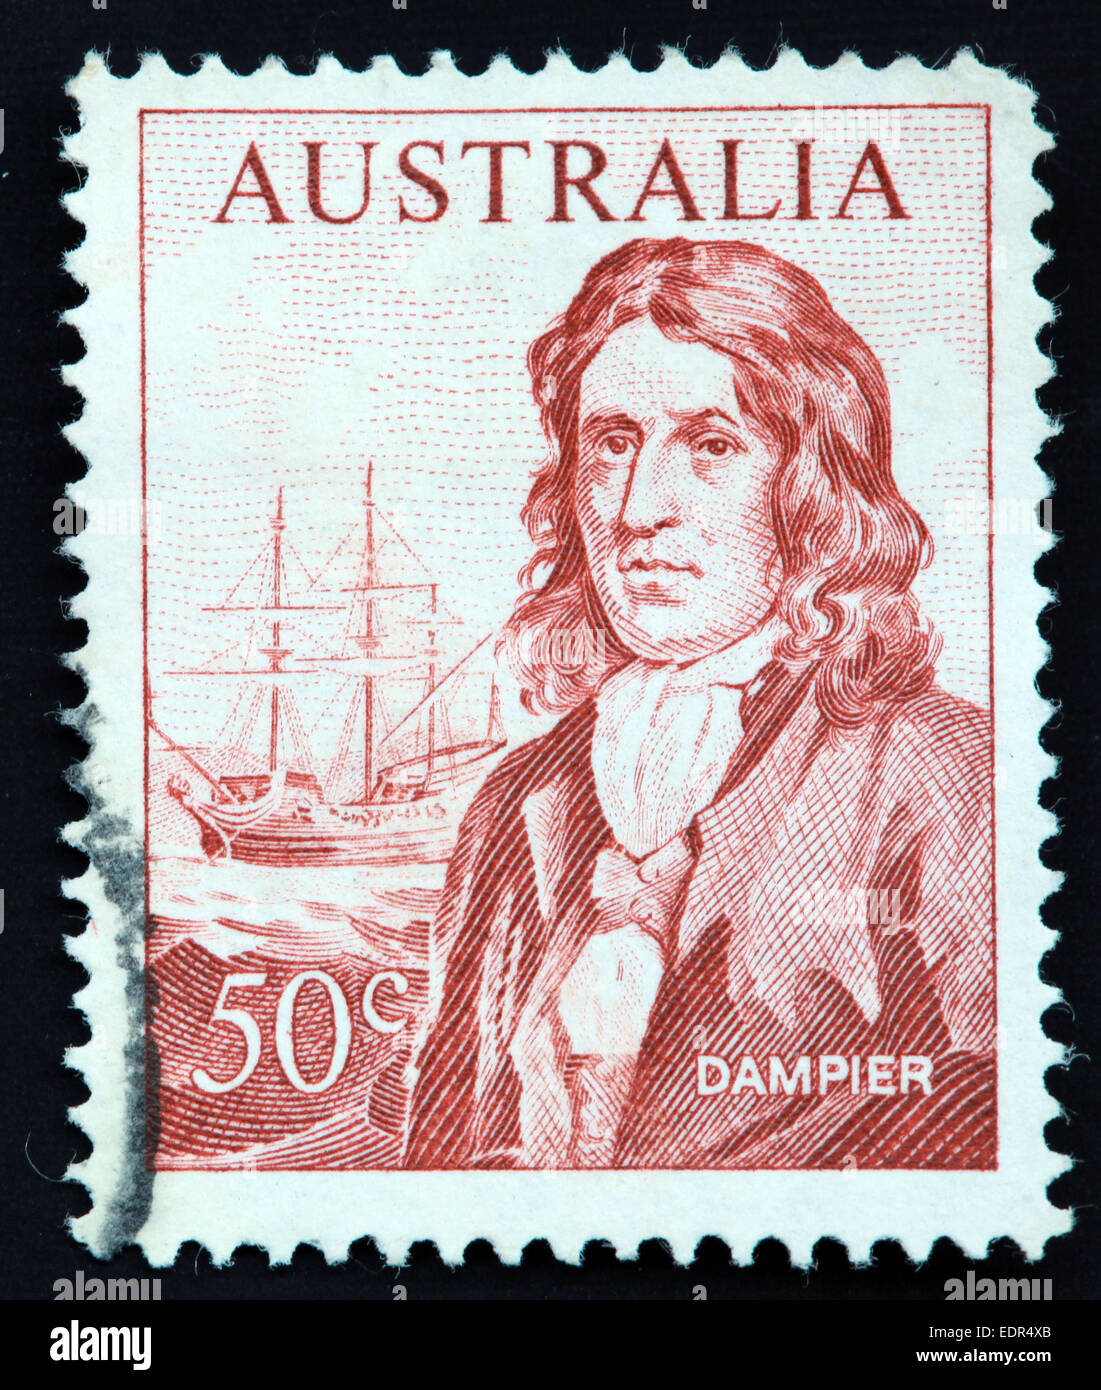 "Used and postmarked Australia / Australian Stamp 50c Dampier with the ""Roebuck"" sailing ship Stock Photo"